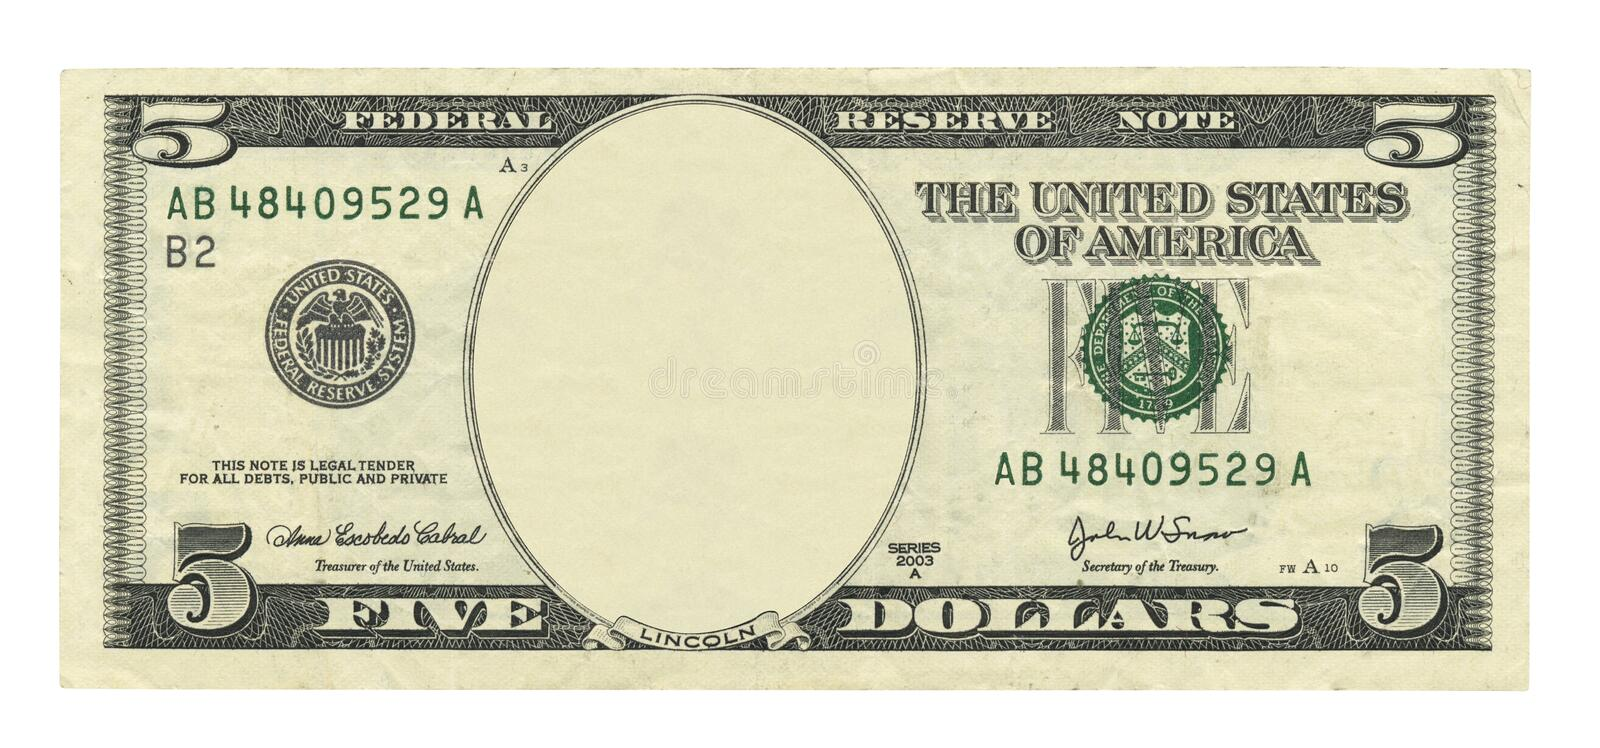 Blank 5 Dollar Bill Stock Photo - Image: 65624077